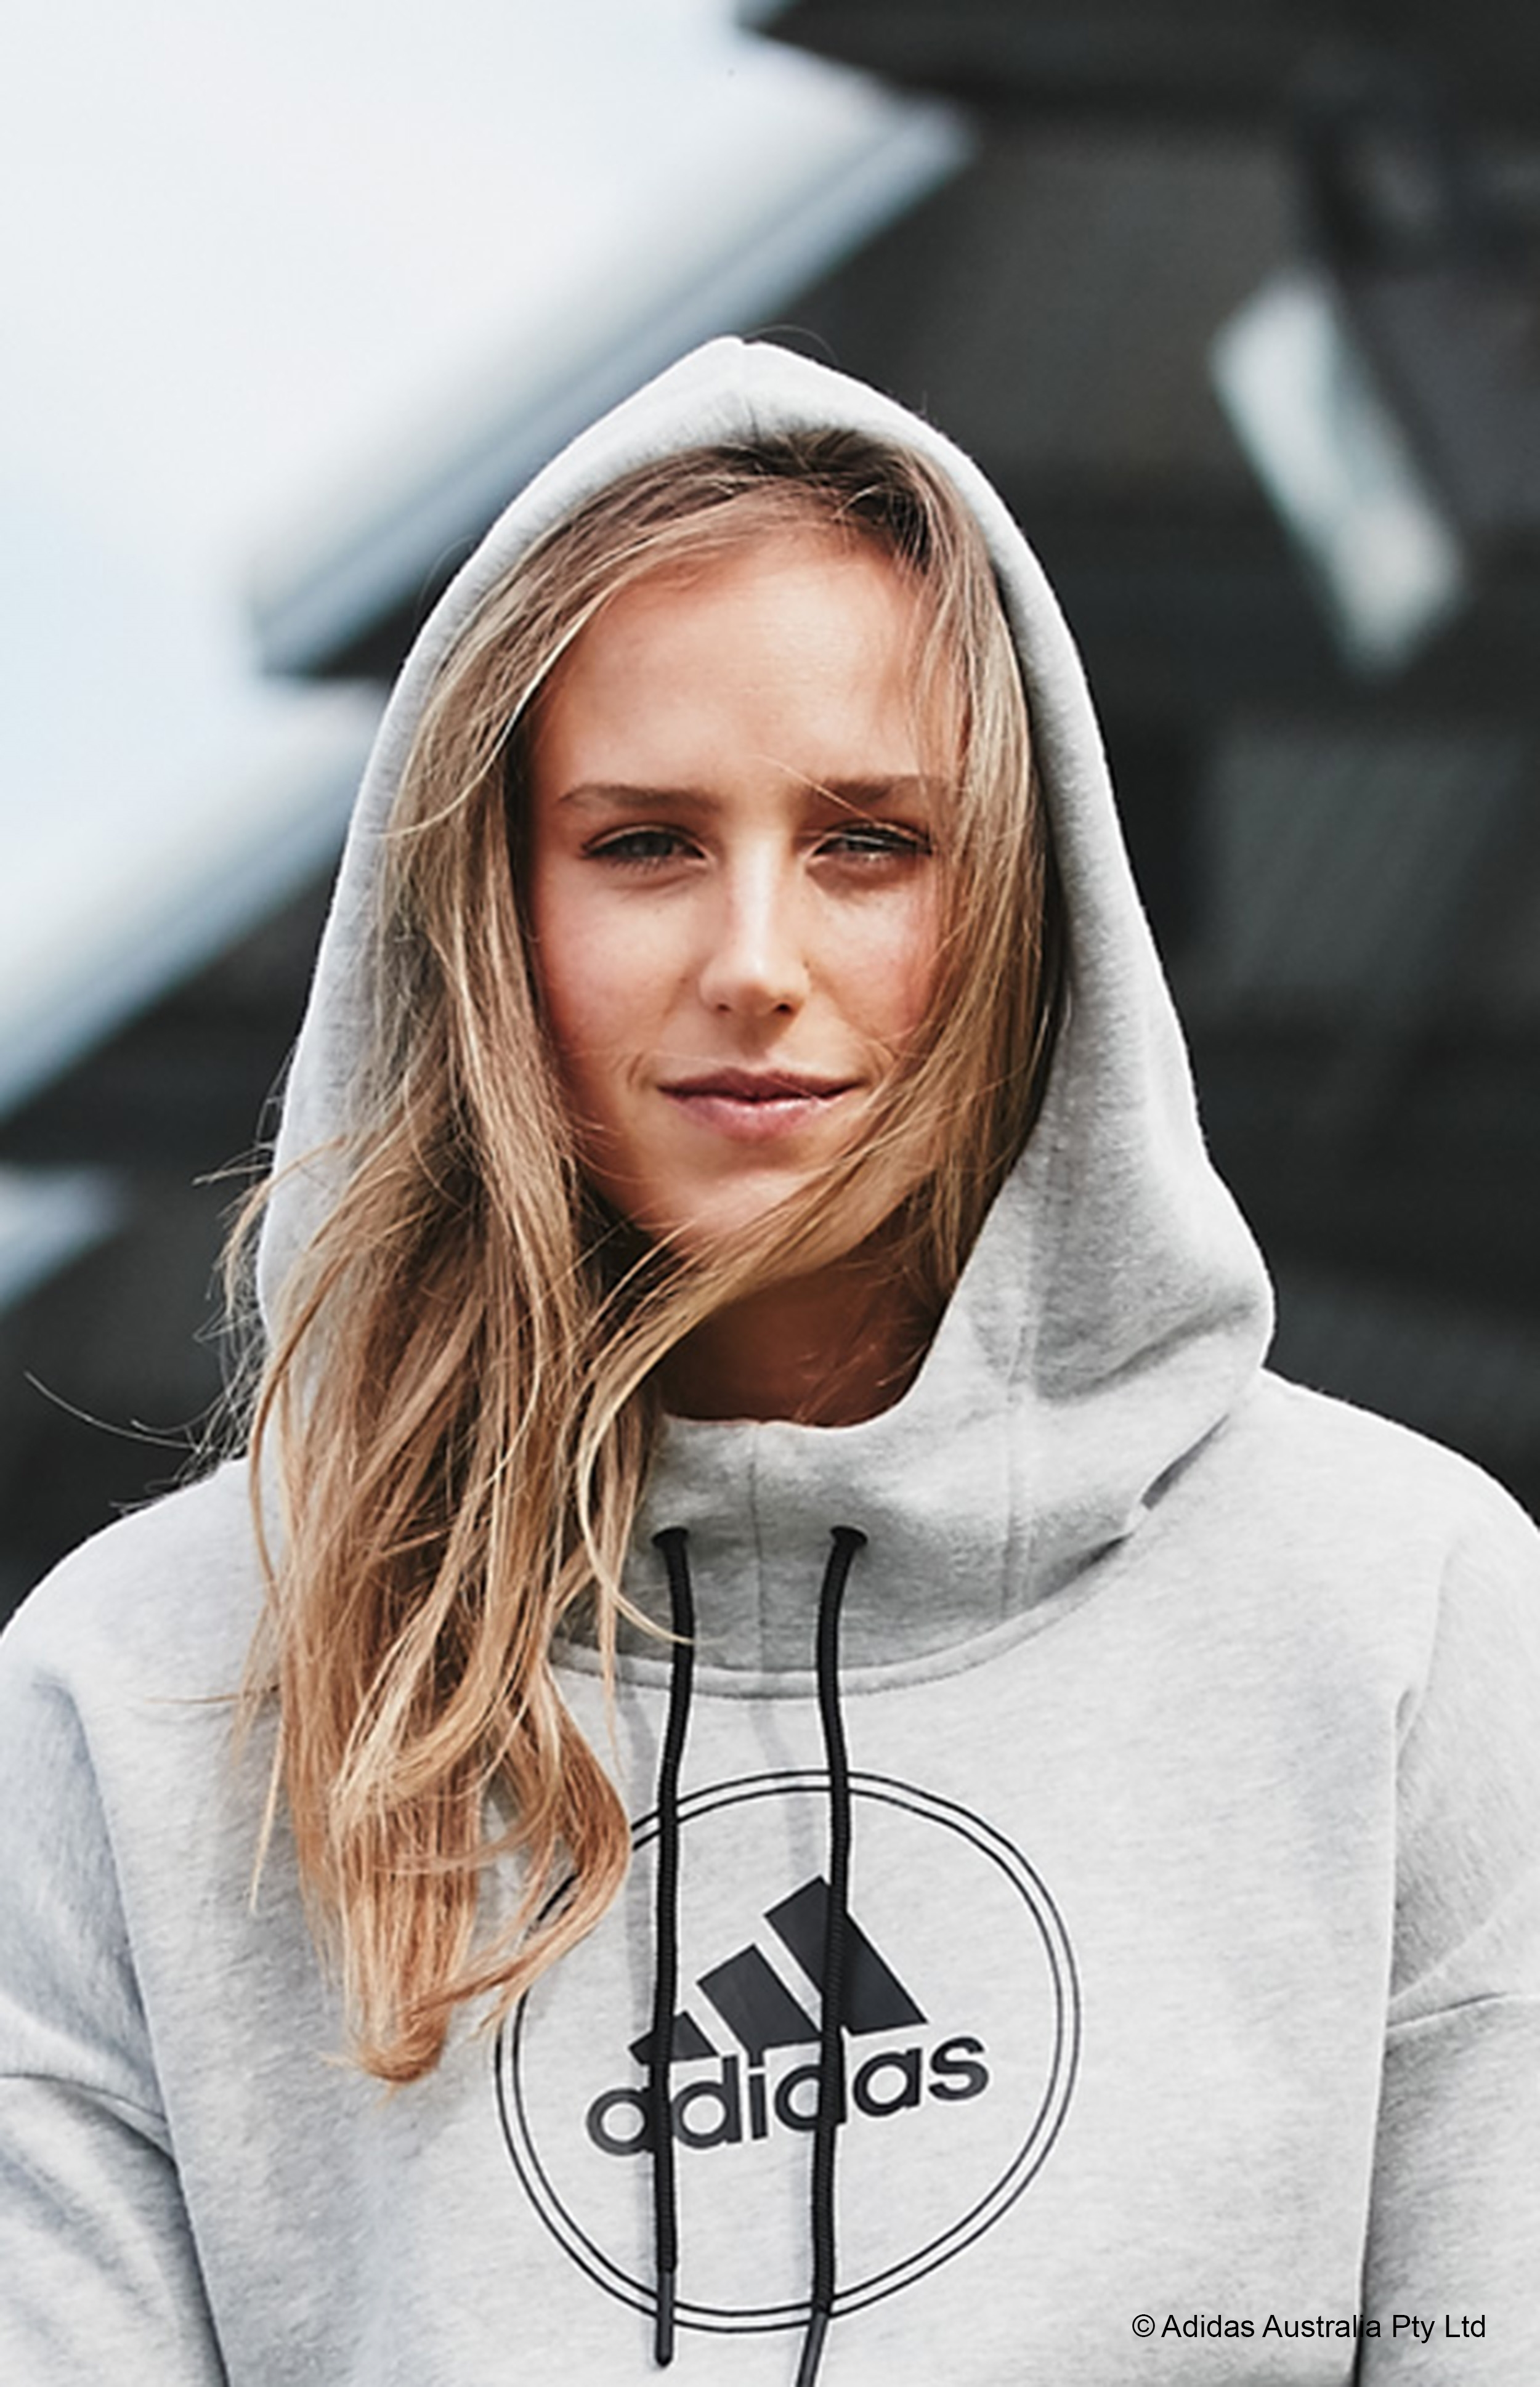 Ellyse Perry naked 330